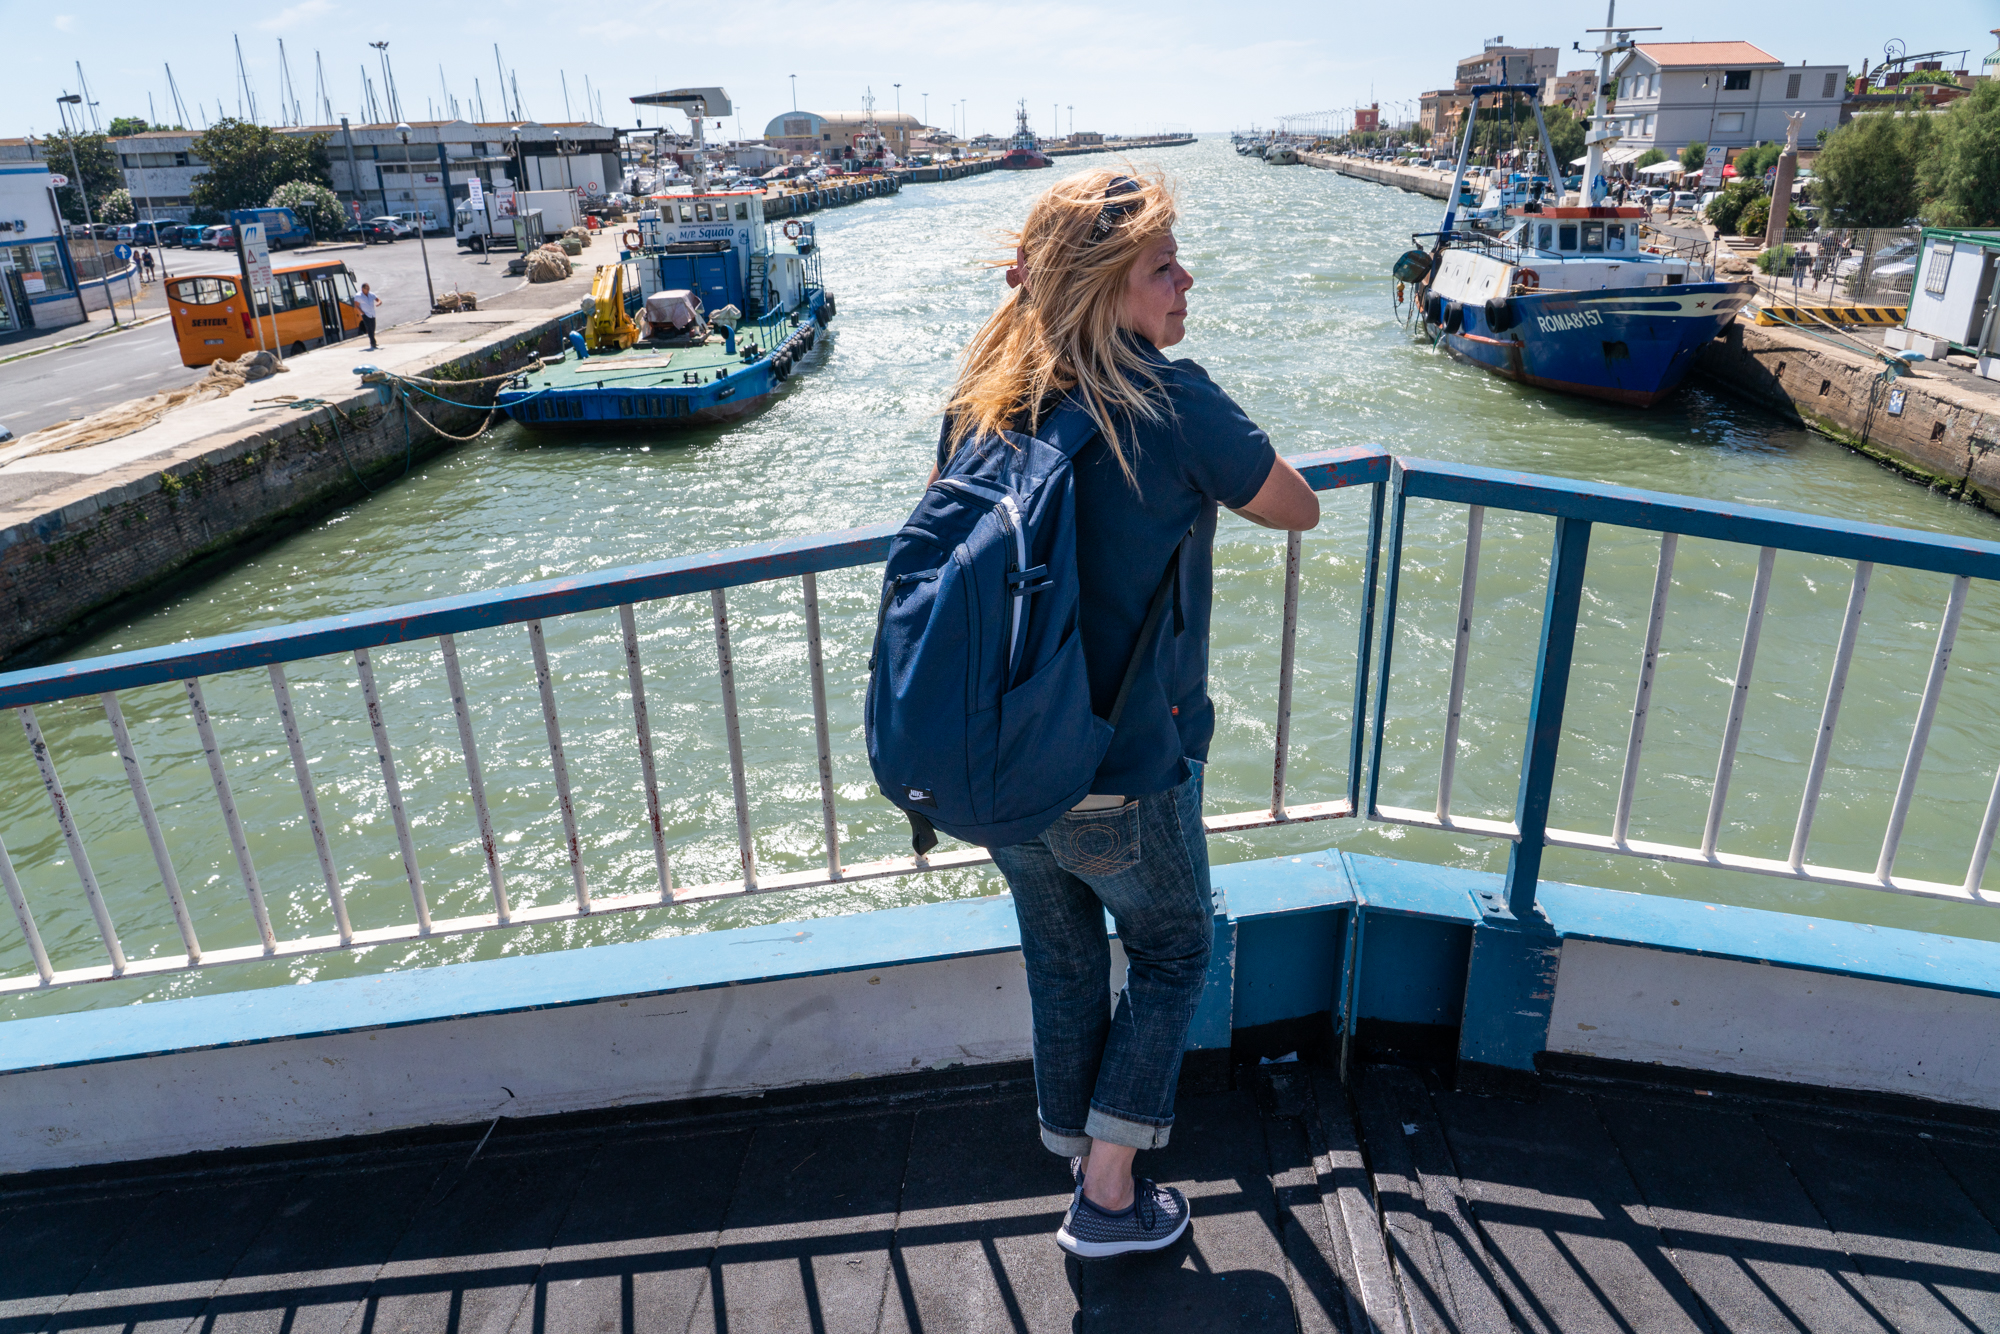 Patrizia pauses on a bridge at the Fiumicino Harbor in Italy. She visits the harbor, where the sailing boat is docked, several times each week for hands-on instruction.